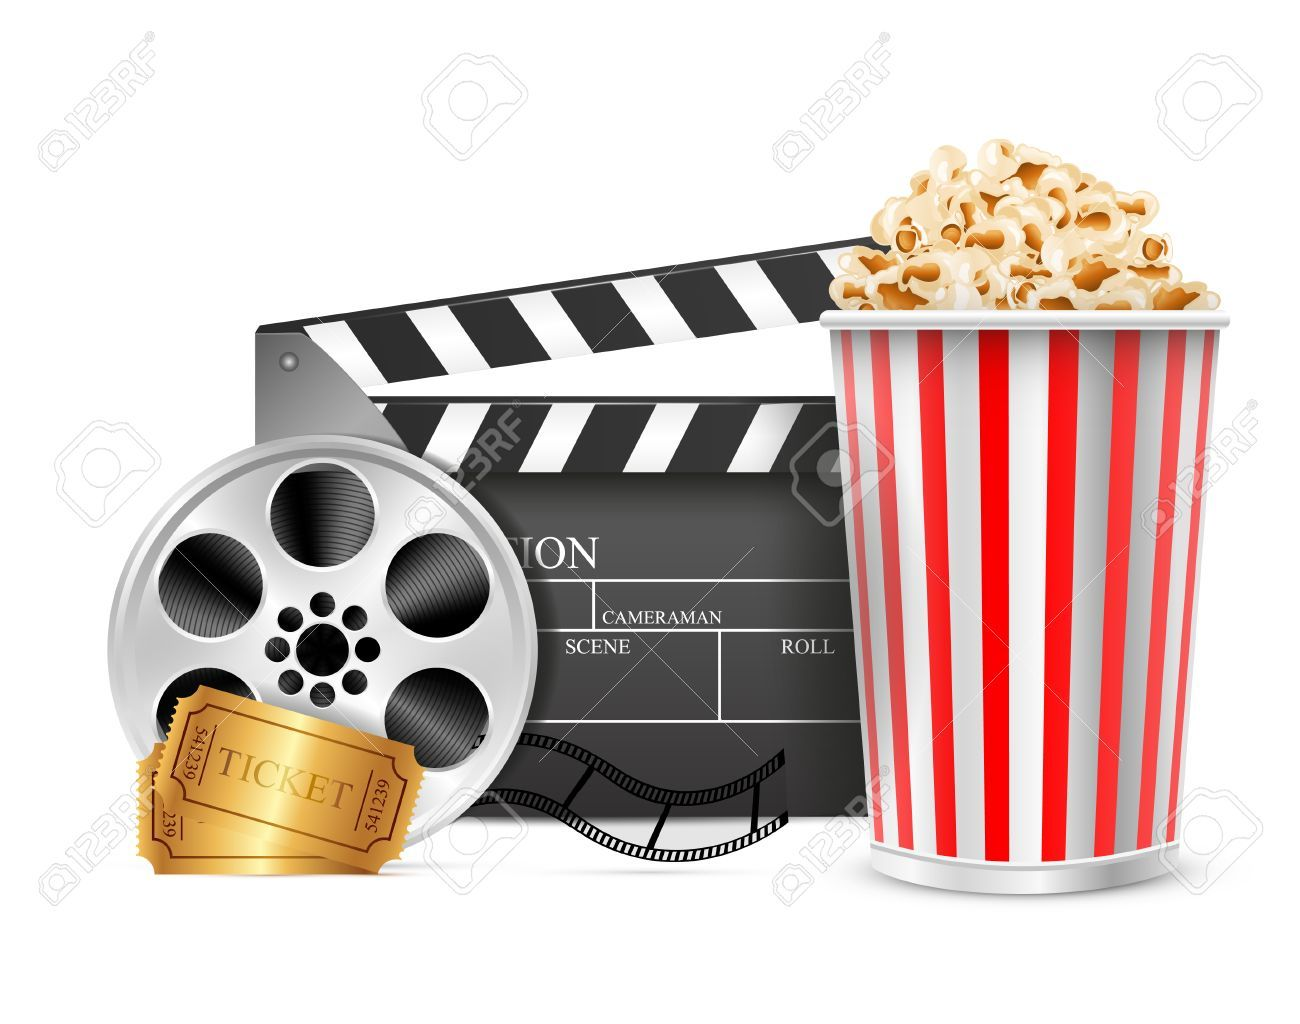 Cinema Clapper Film Reel Drink Popcorn And Tickets Isolated Cinema Iphone Wallpaper Film